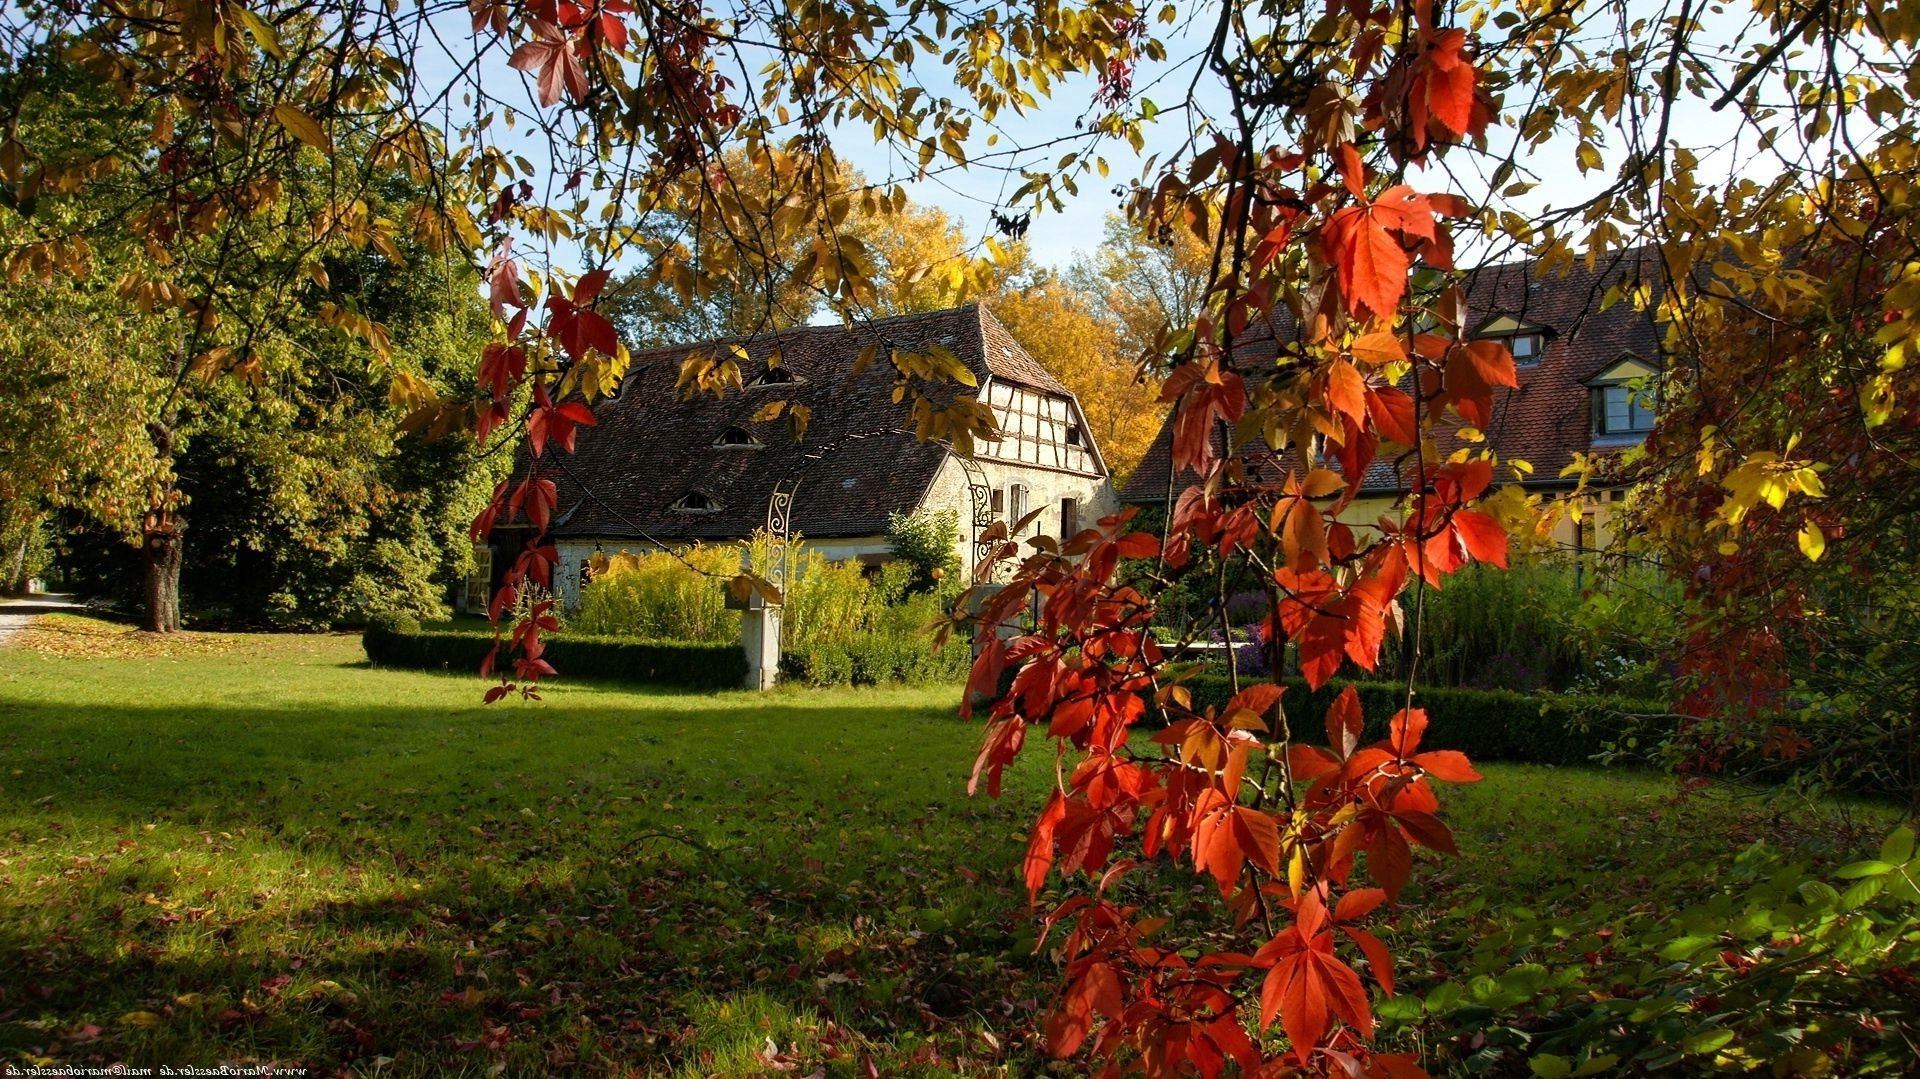 houses and cottages tree leaf fall season park garden outdoors nature branch color flower flora maple bright landscape